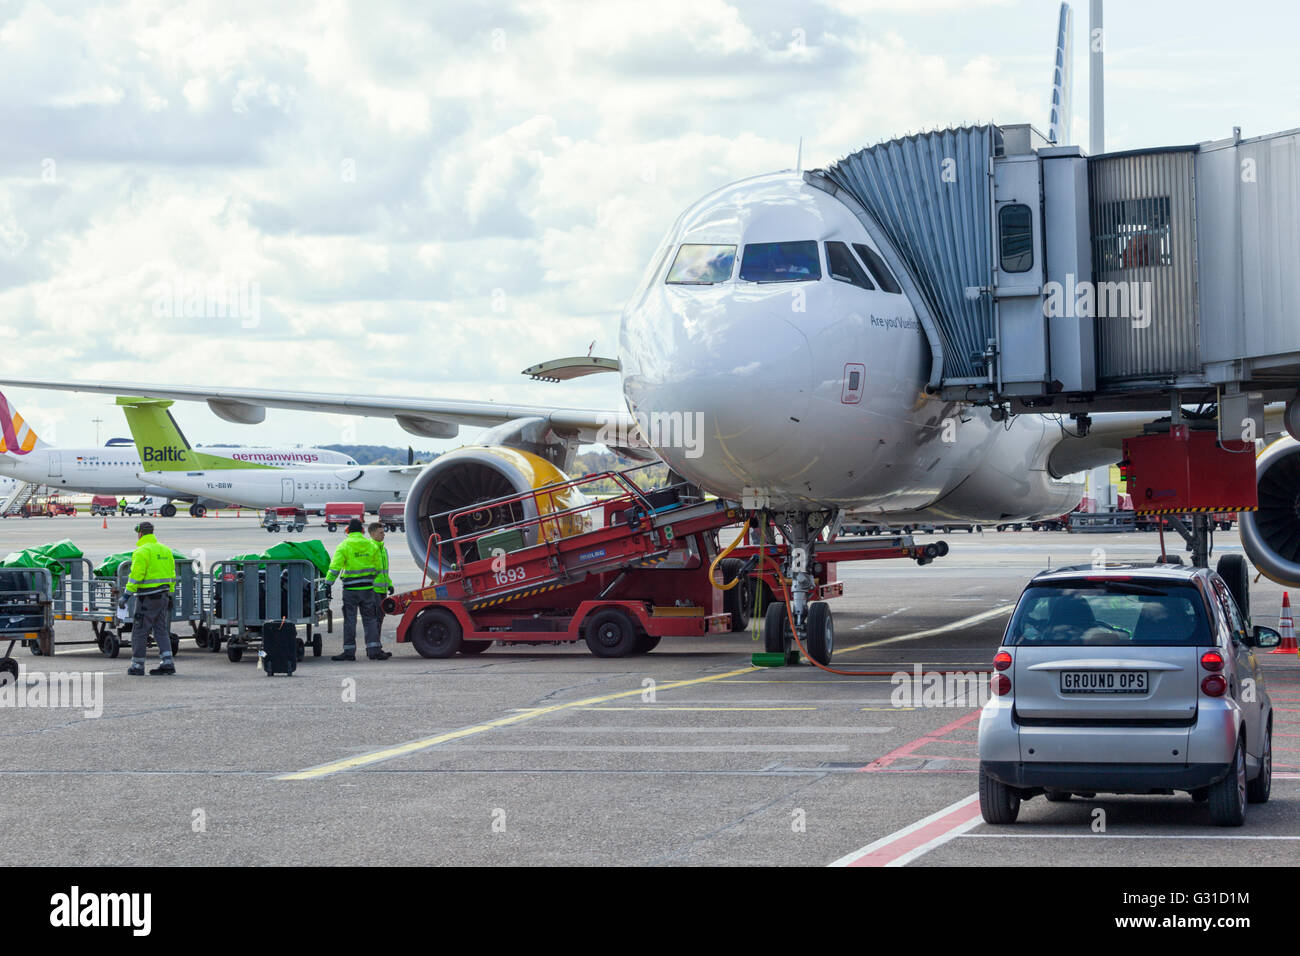 Ground service for Airbus plane operated by spanish low-cost carrier Vueling Airlines SA at Hamburg airport - Stock Image